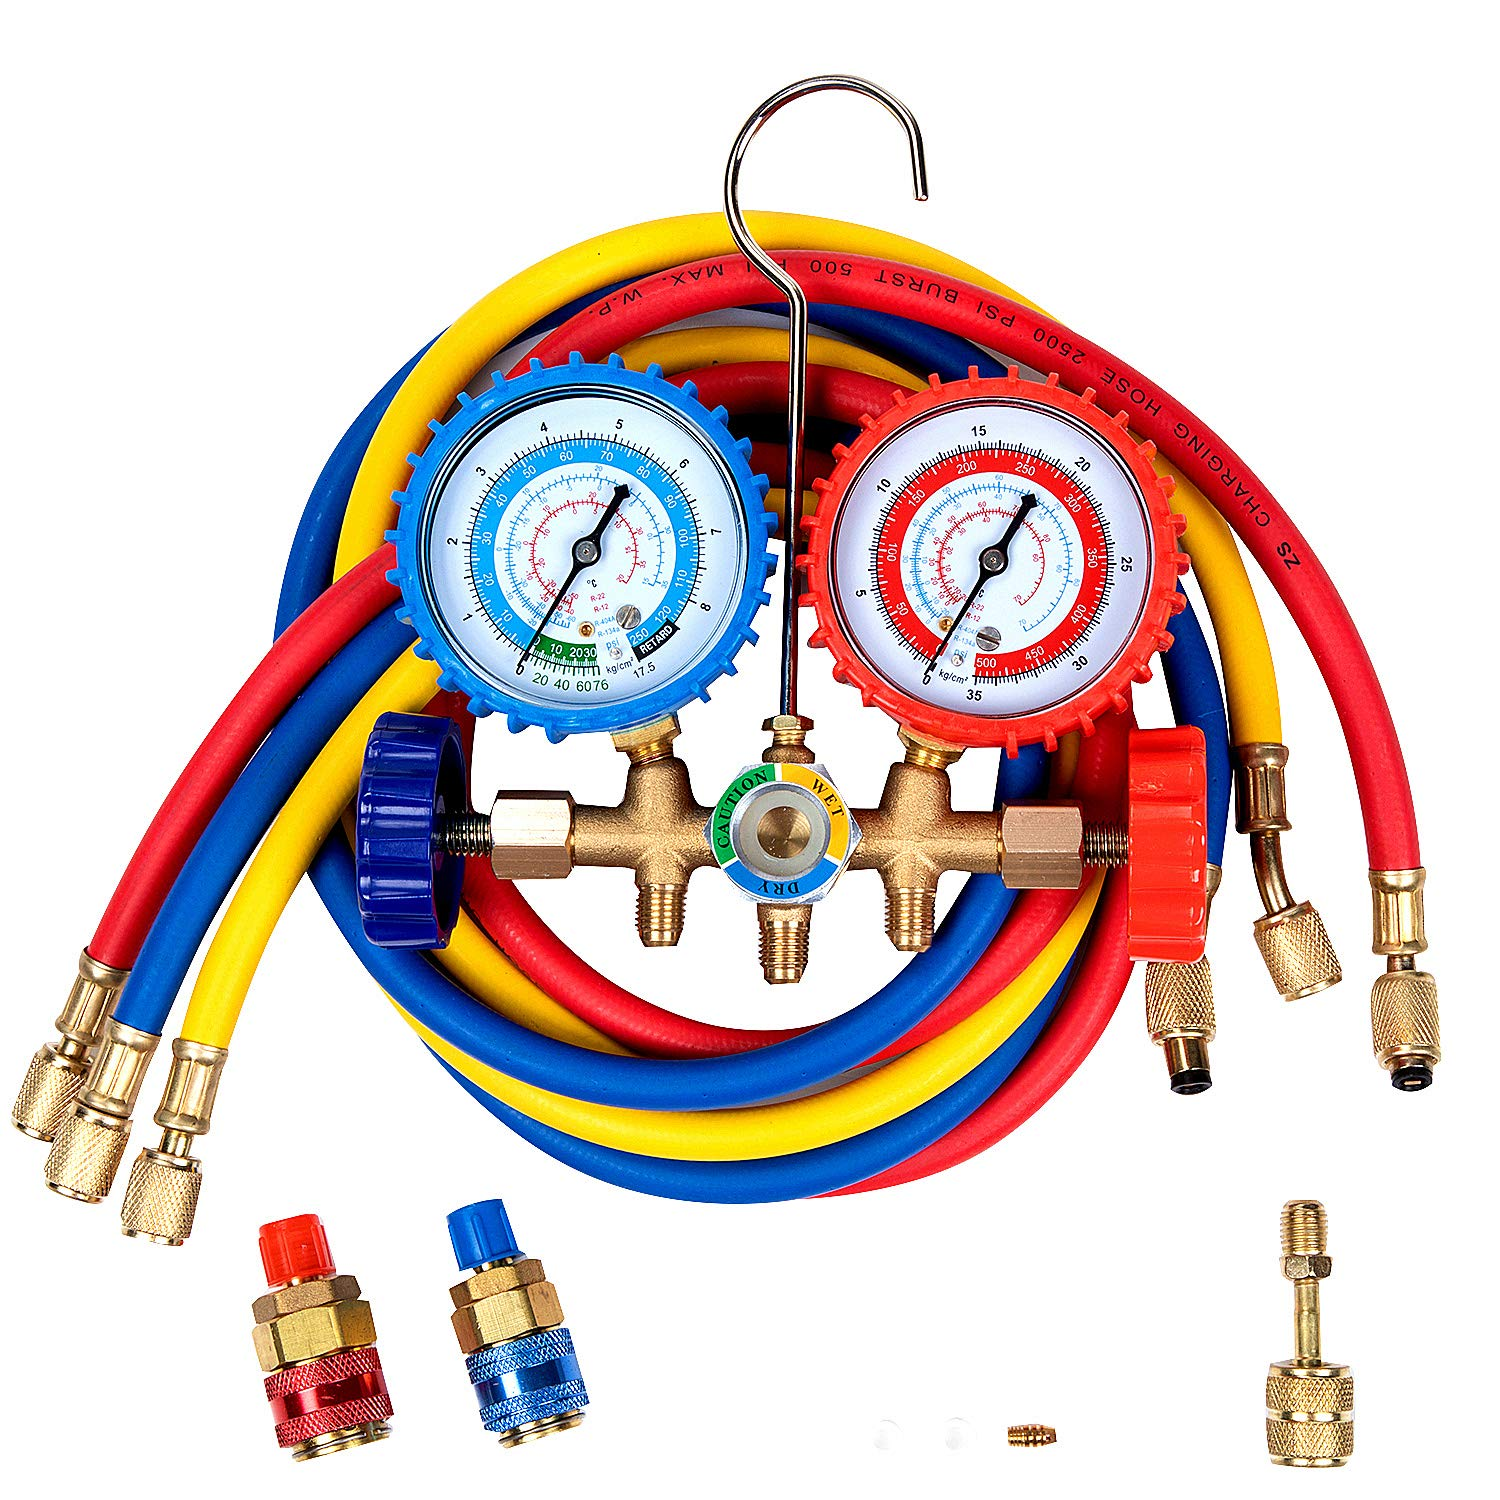 Detool 5ft Pro AC A/C Diagnostic Manifold Gauge Set Freon Gauge for R134A R12 R22 Refrigerants, with Couplers and Acme Adapter